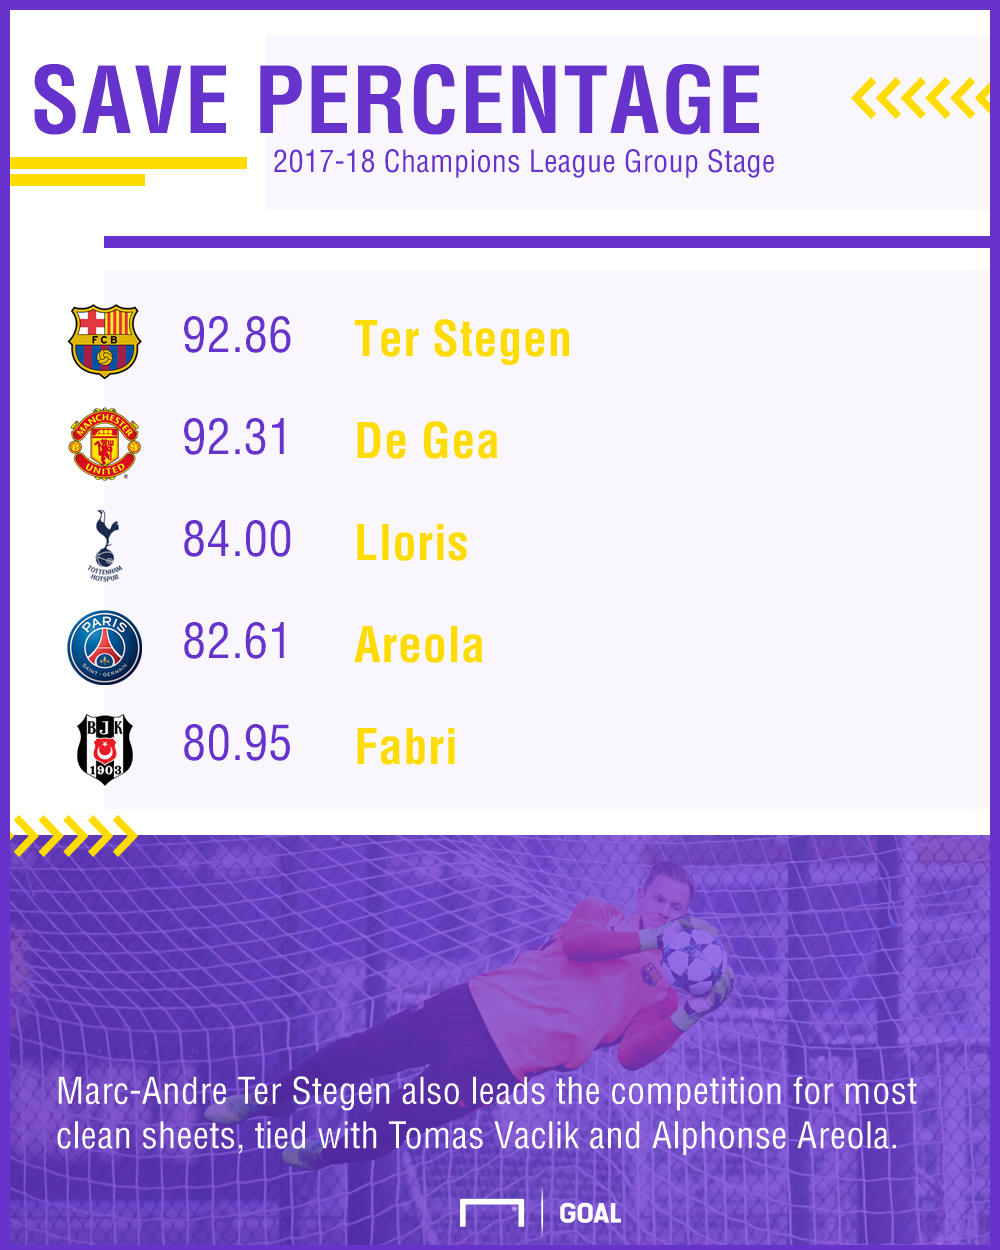 GFX Champions League Group Stage Save Percentage